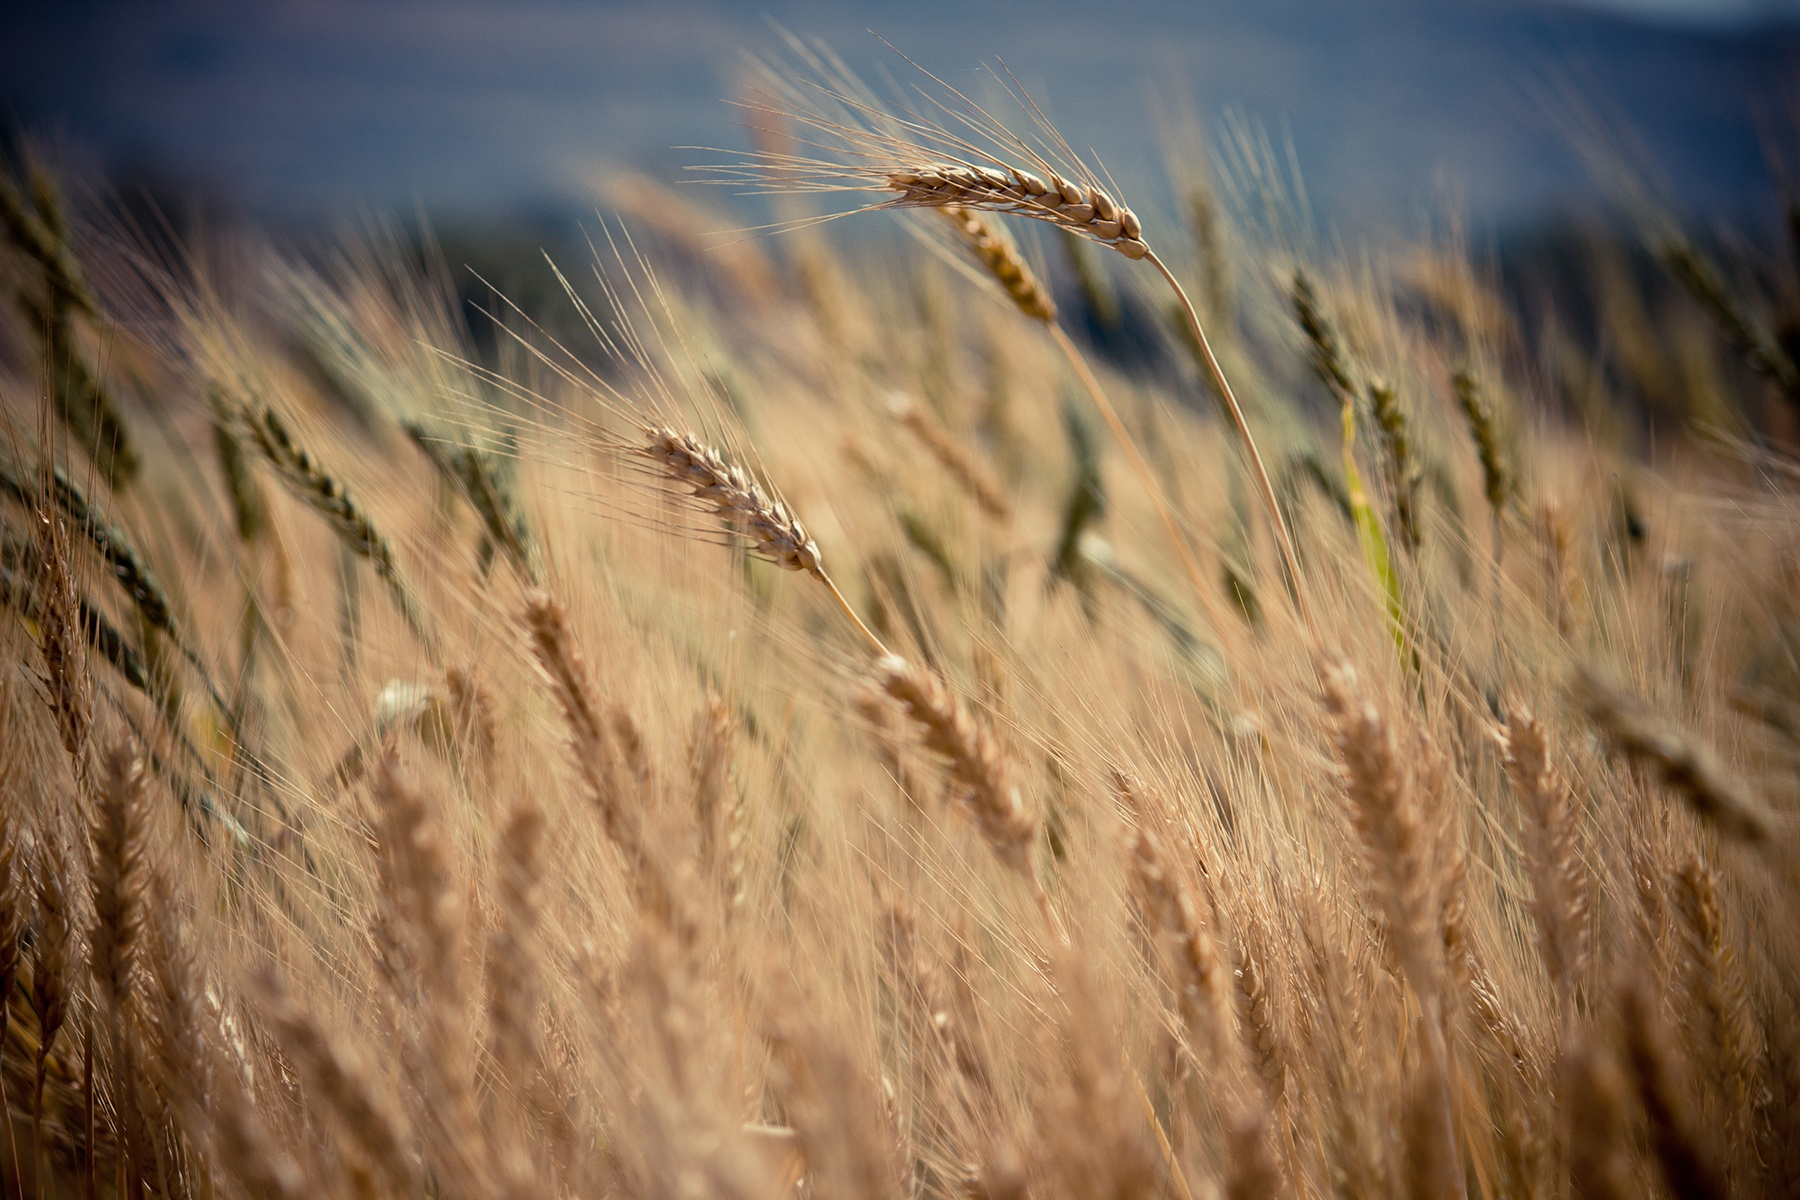 Ruth knew that the God of Israel had made a daily provision for the poor and the widows in the fields and she had faith in God's promises and provision. -